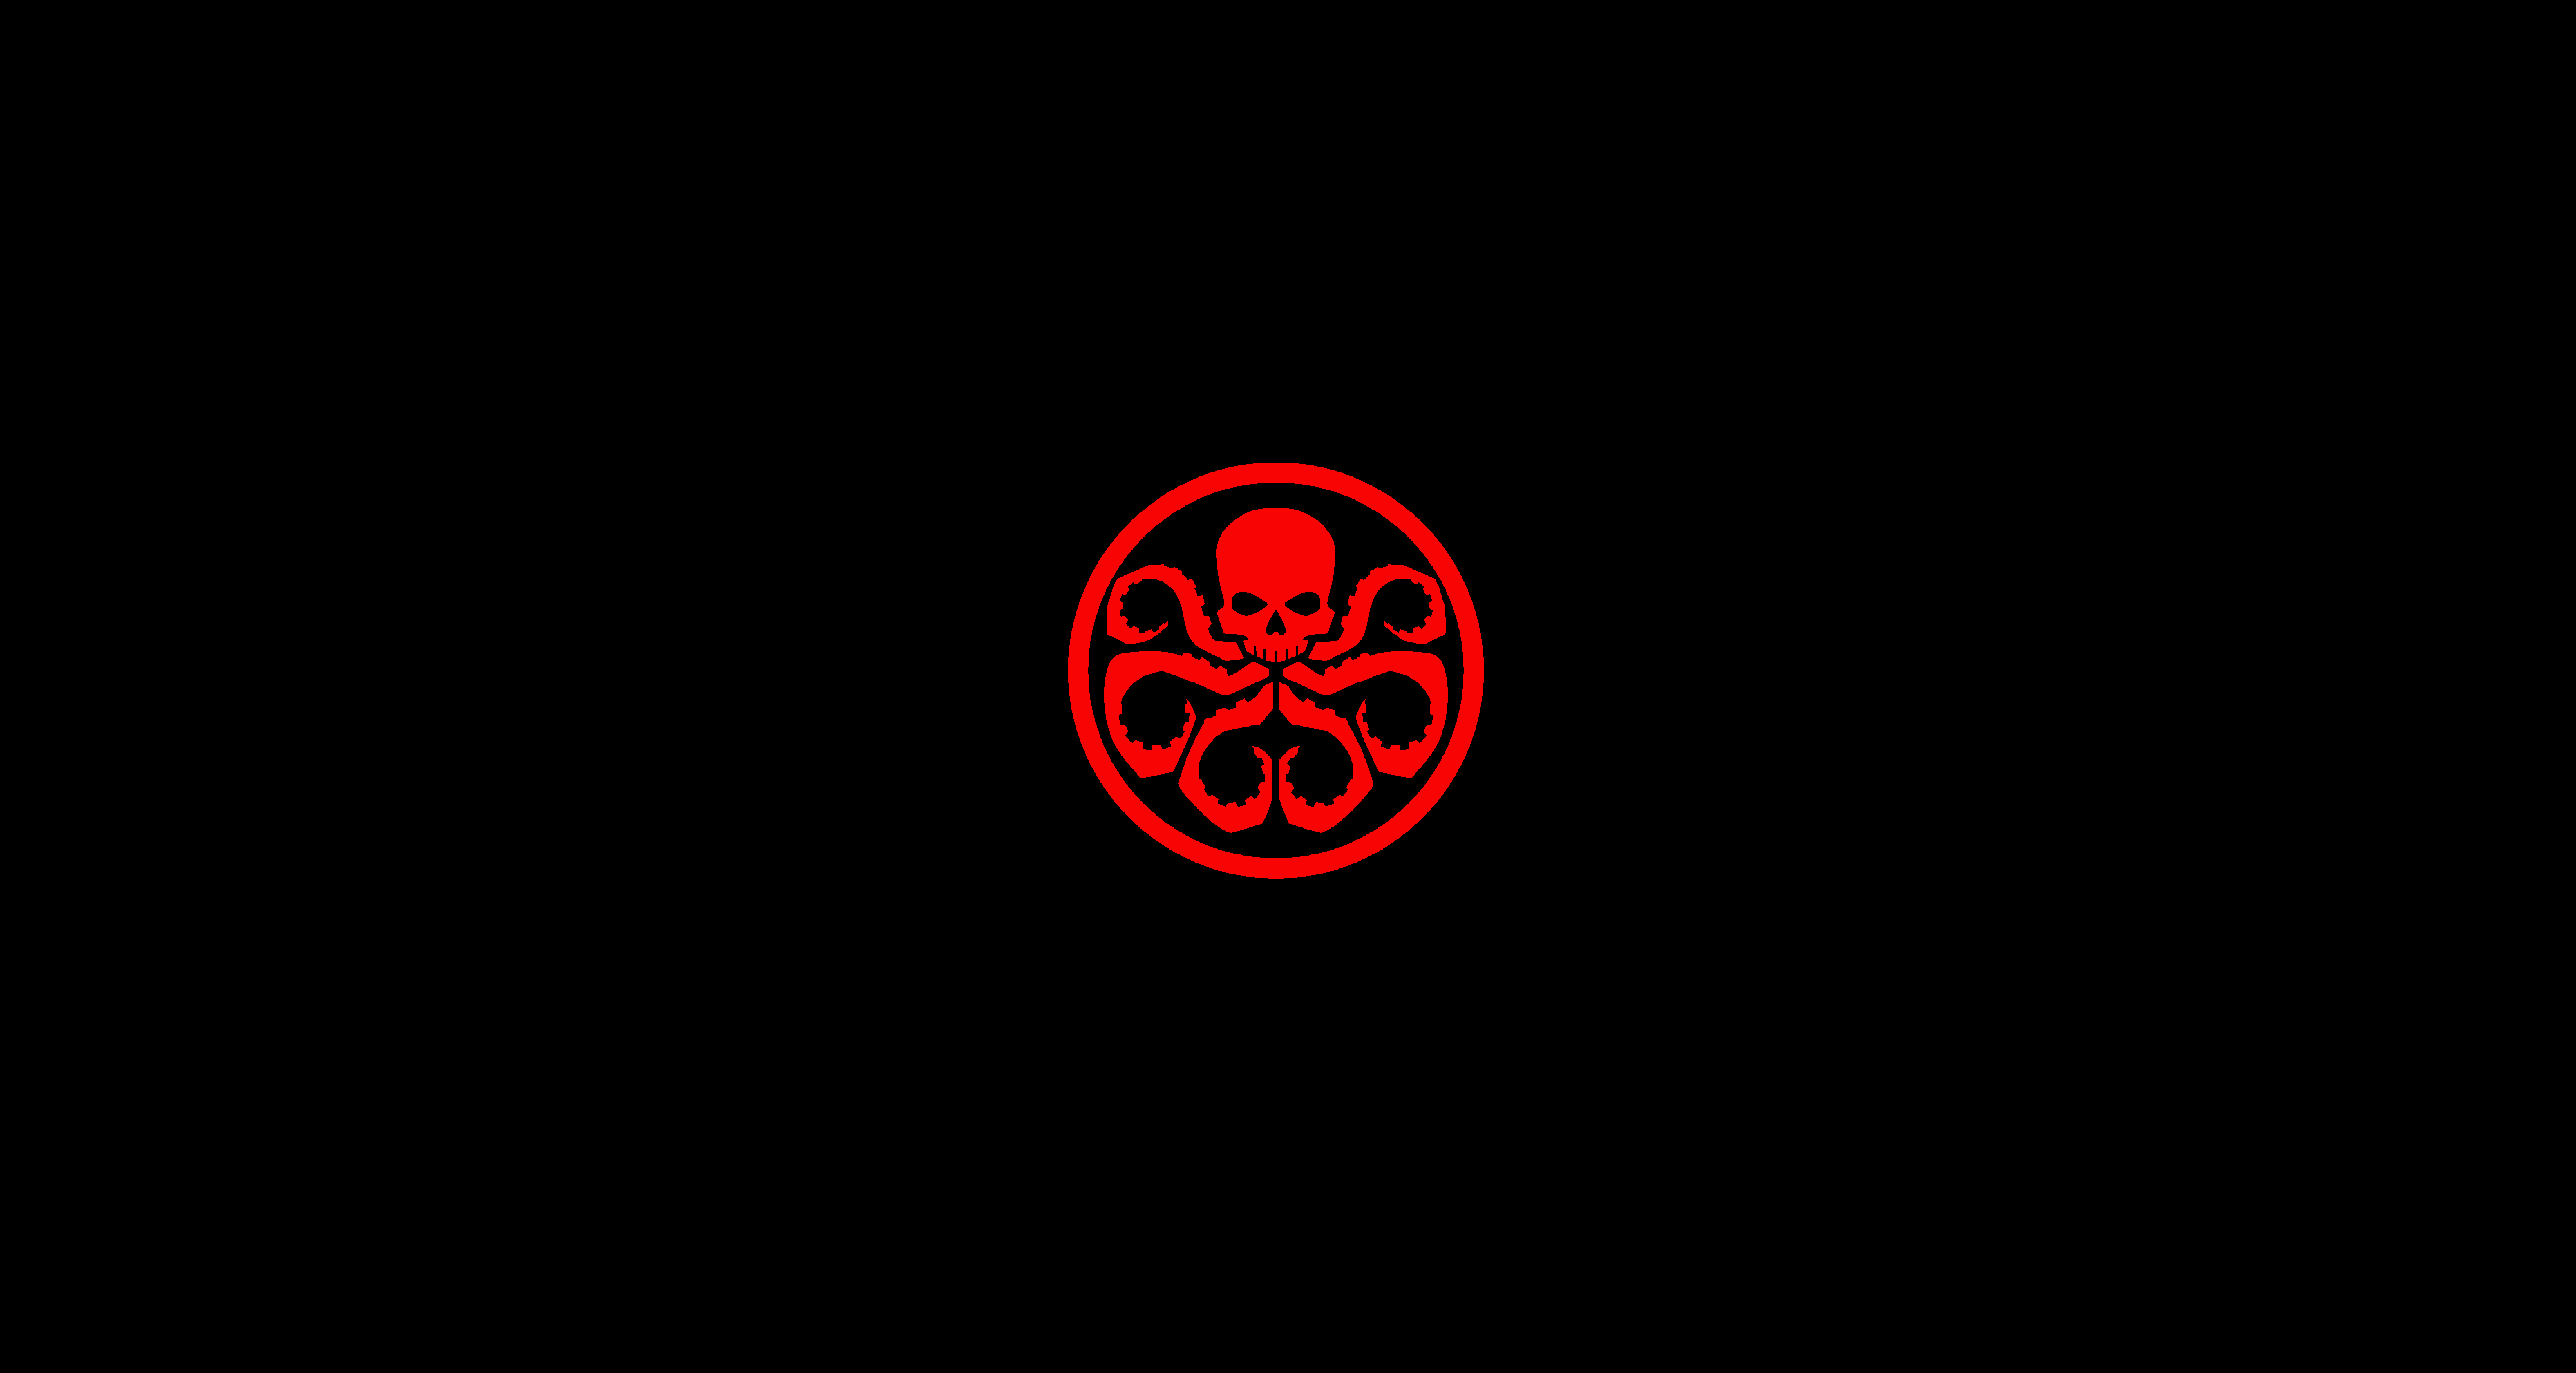 minimalistic hydra (marvel) wallpaper i made after not finding one i